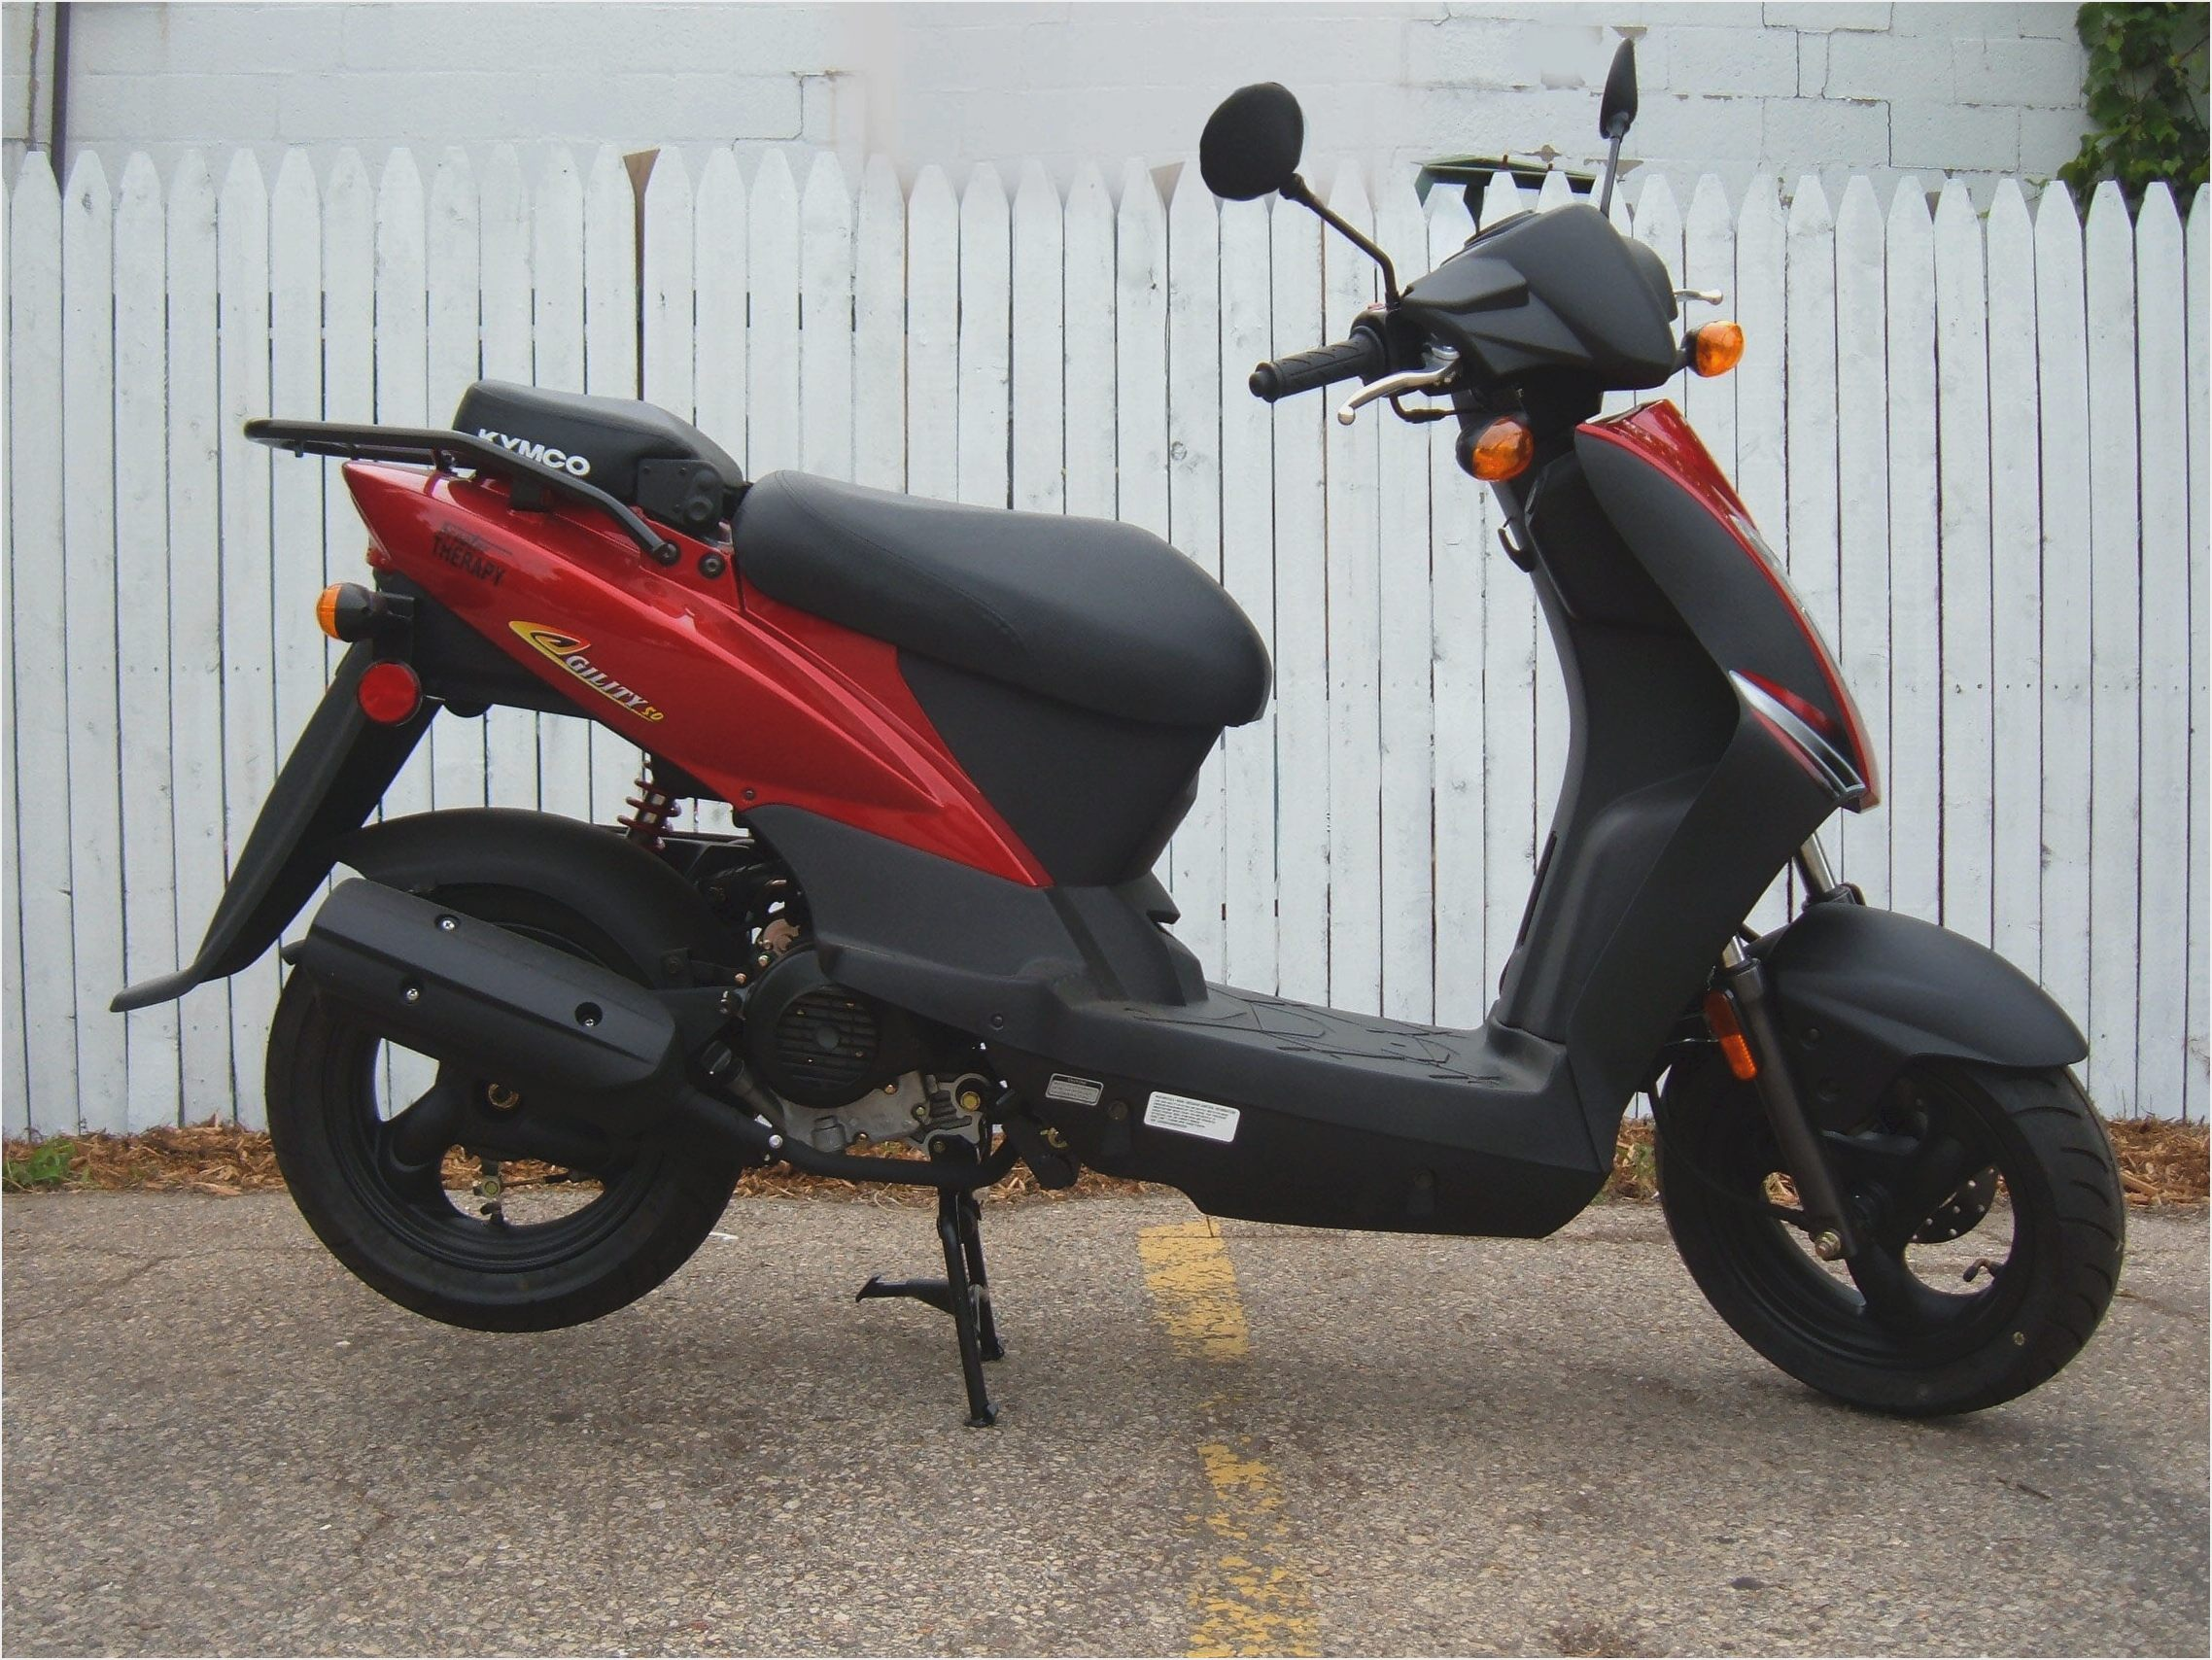 Kymco Agility City 125 images #101828